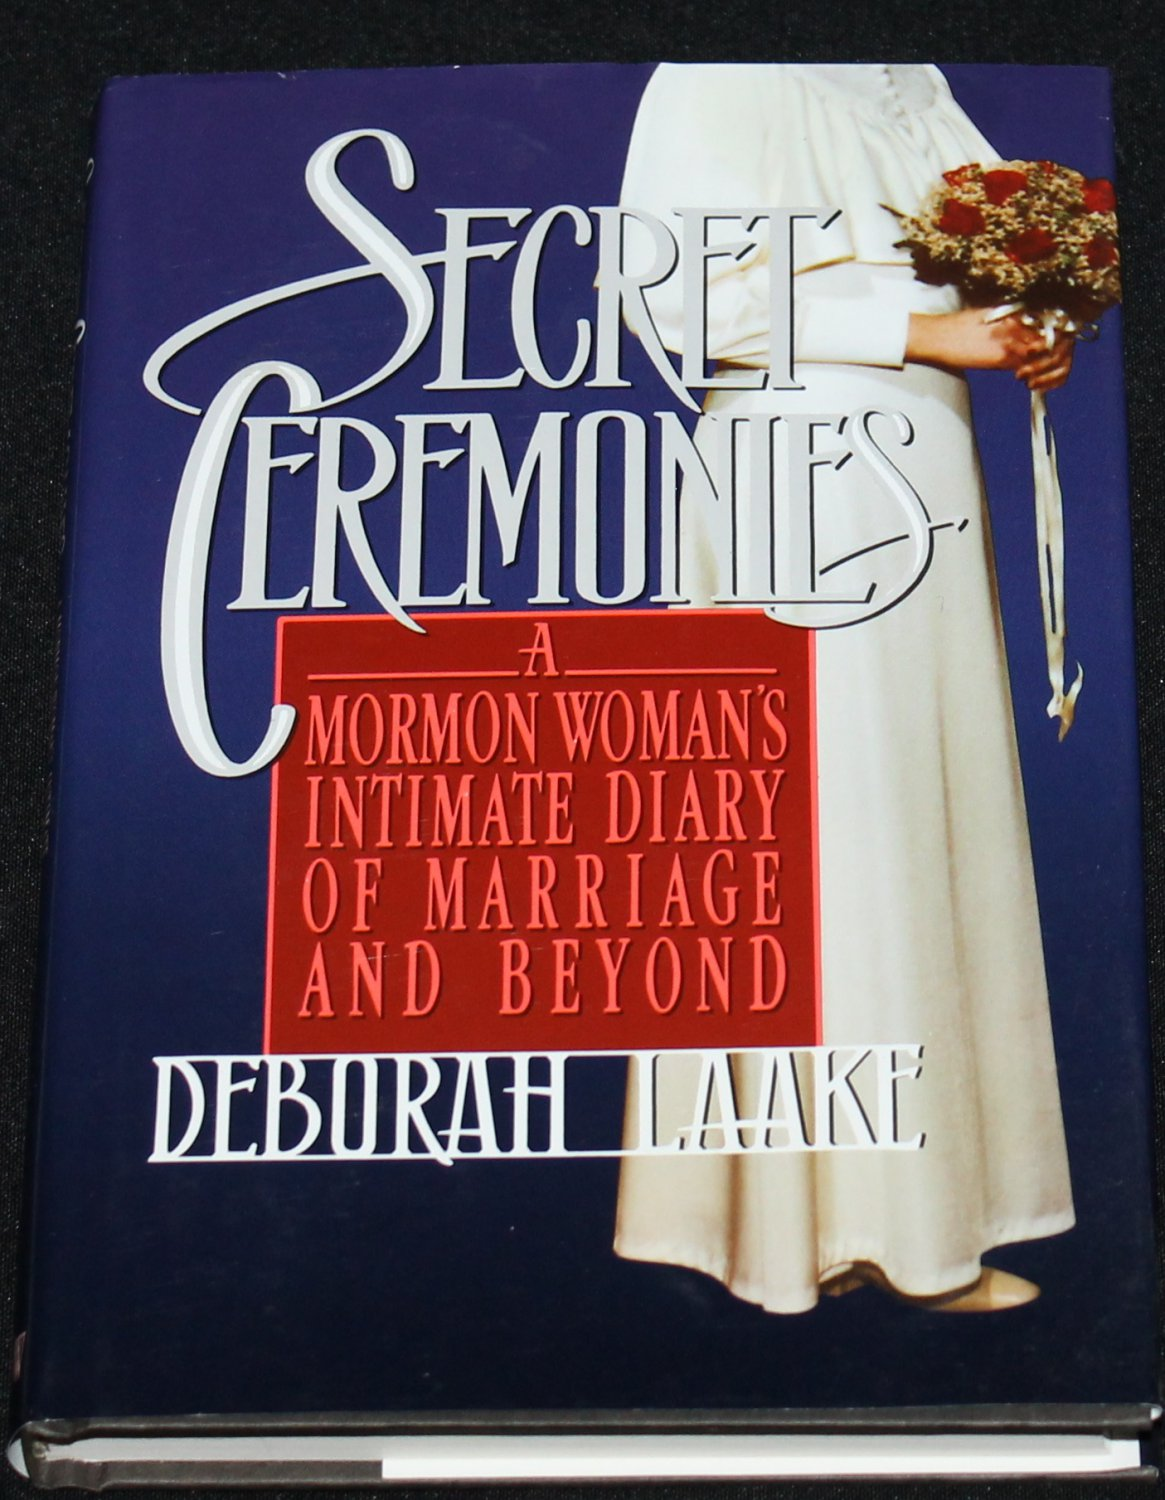 Secret Ceremonies Morman Woman's Intimate Diary of Marriage and Beyond hardcover book